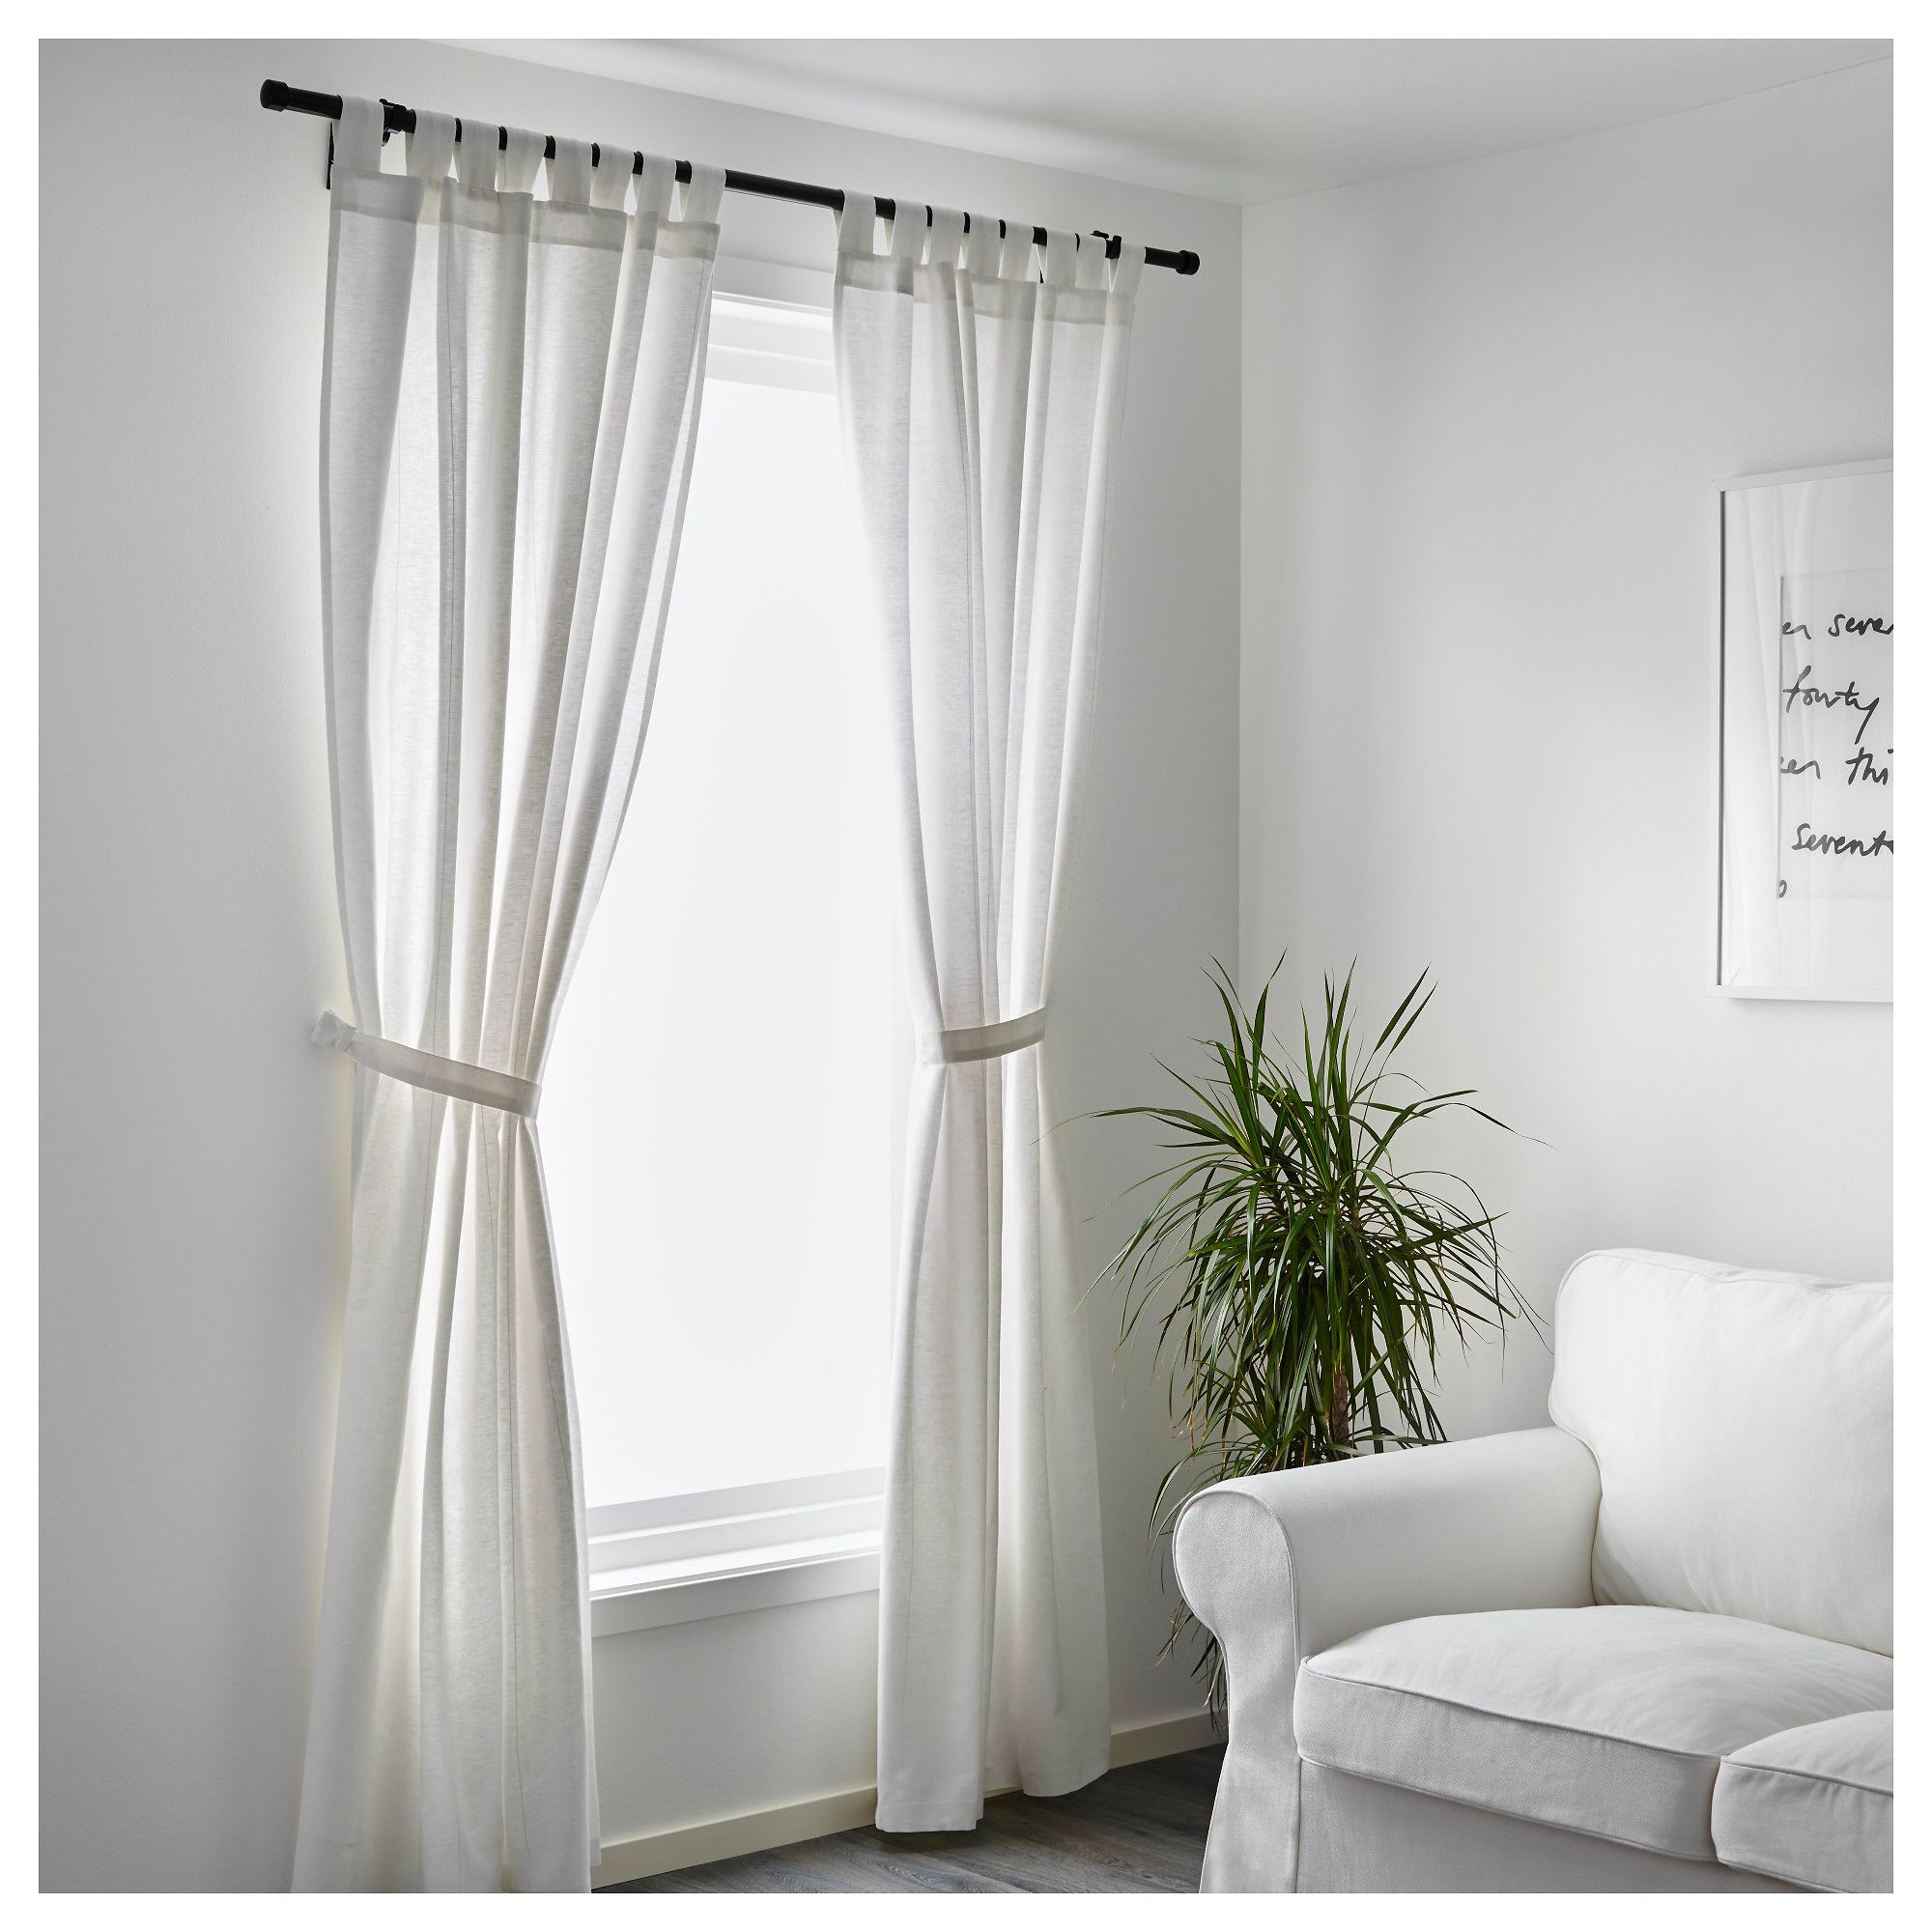 Ikea Lenda Curtains With Tie Backs 1 Pair Bleached